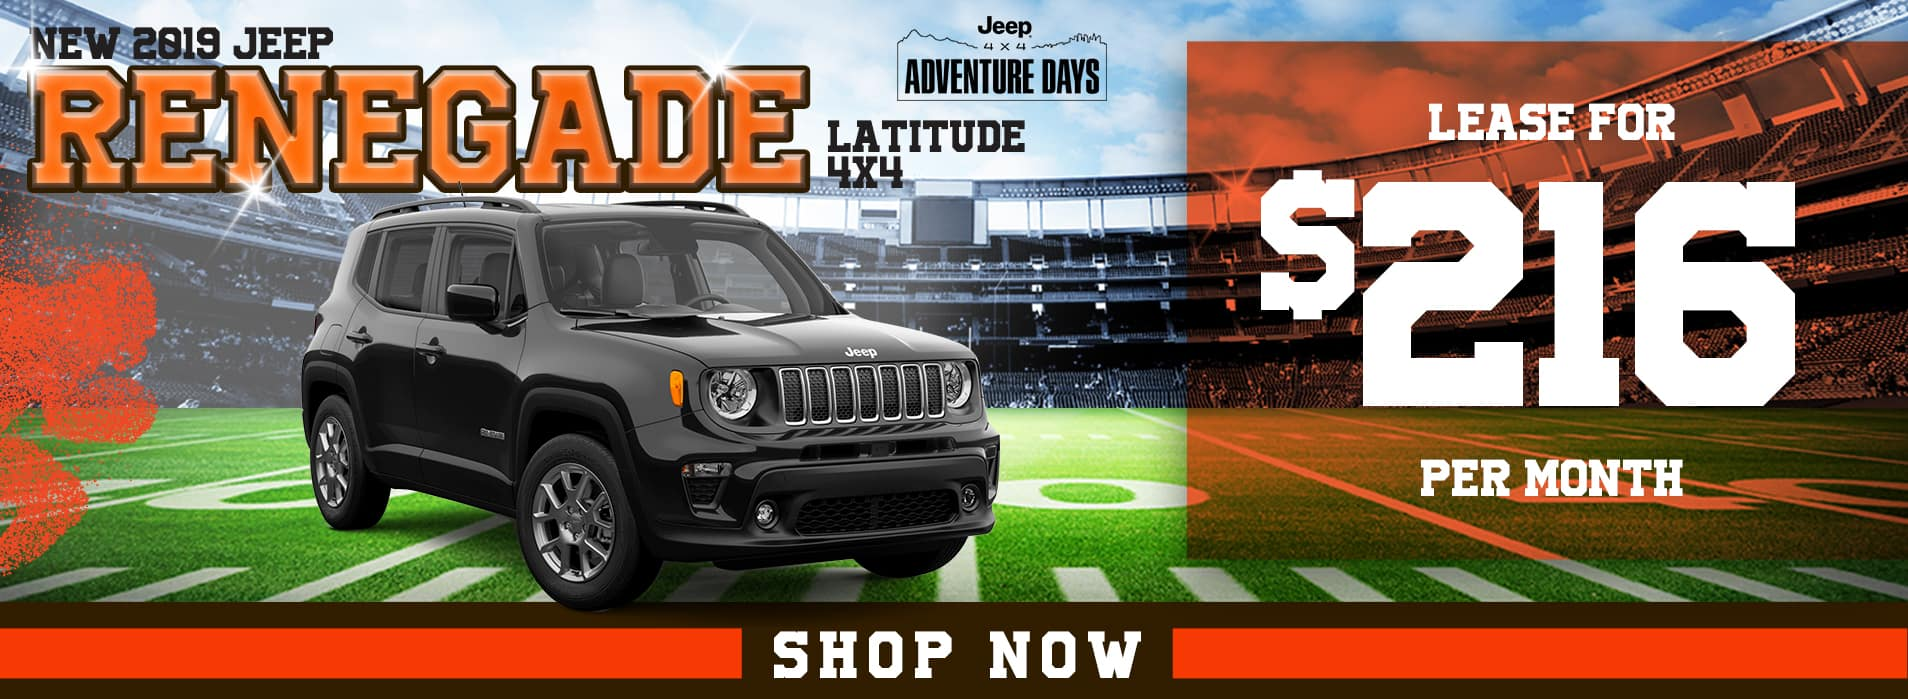 2019 Jeep Renegade Latitude 4x4 Lease for $216 Per Month